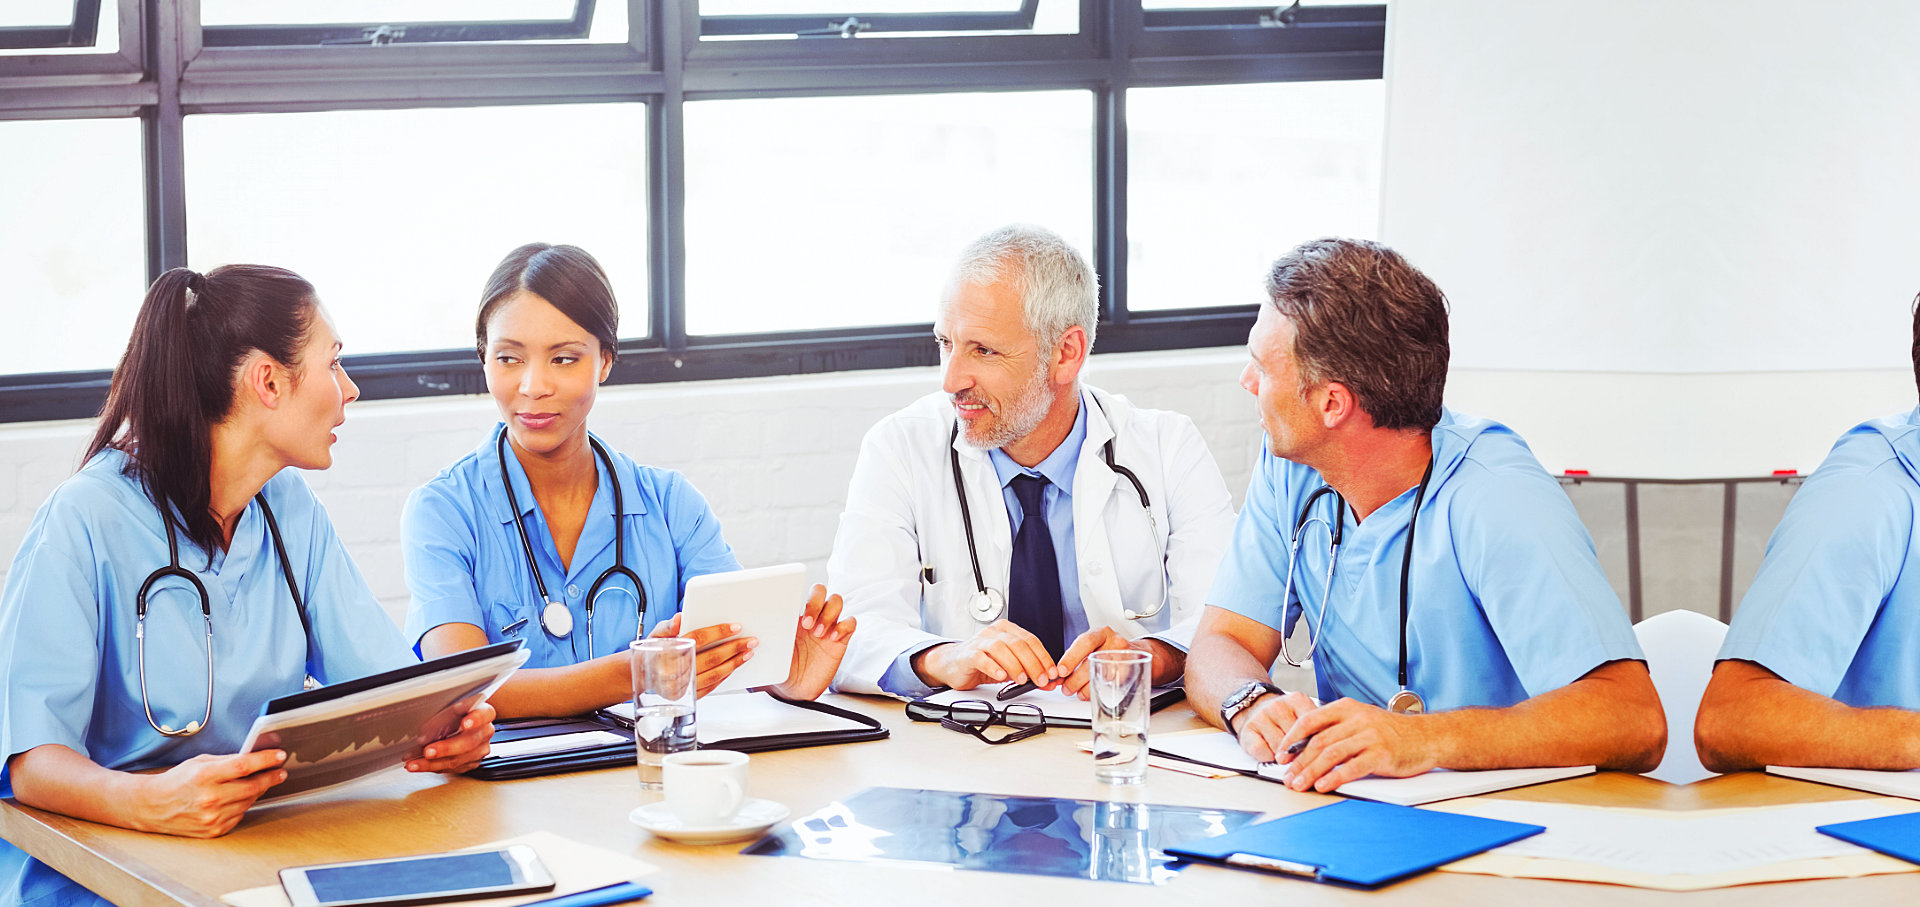 nurses and a doctor having a meeting